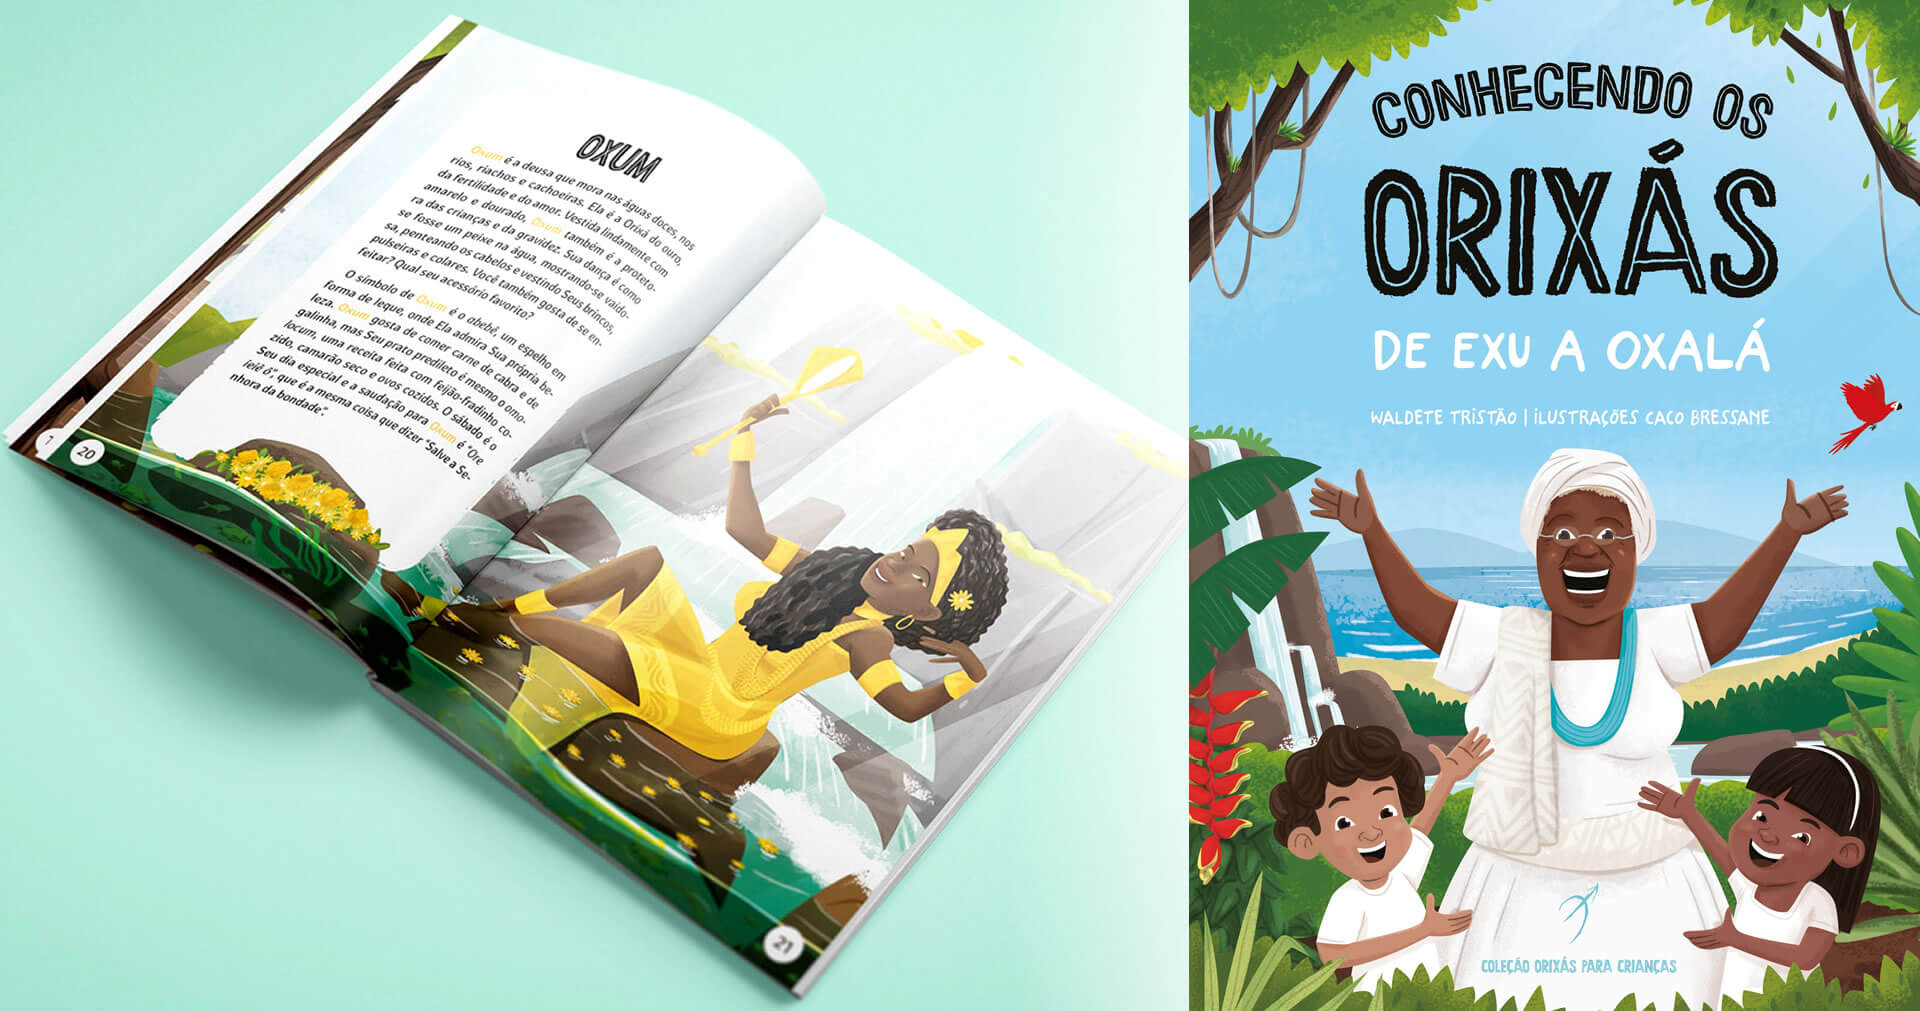 Children´s book helps african-brazilians reclaim heritage